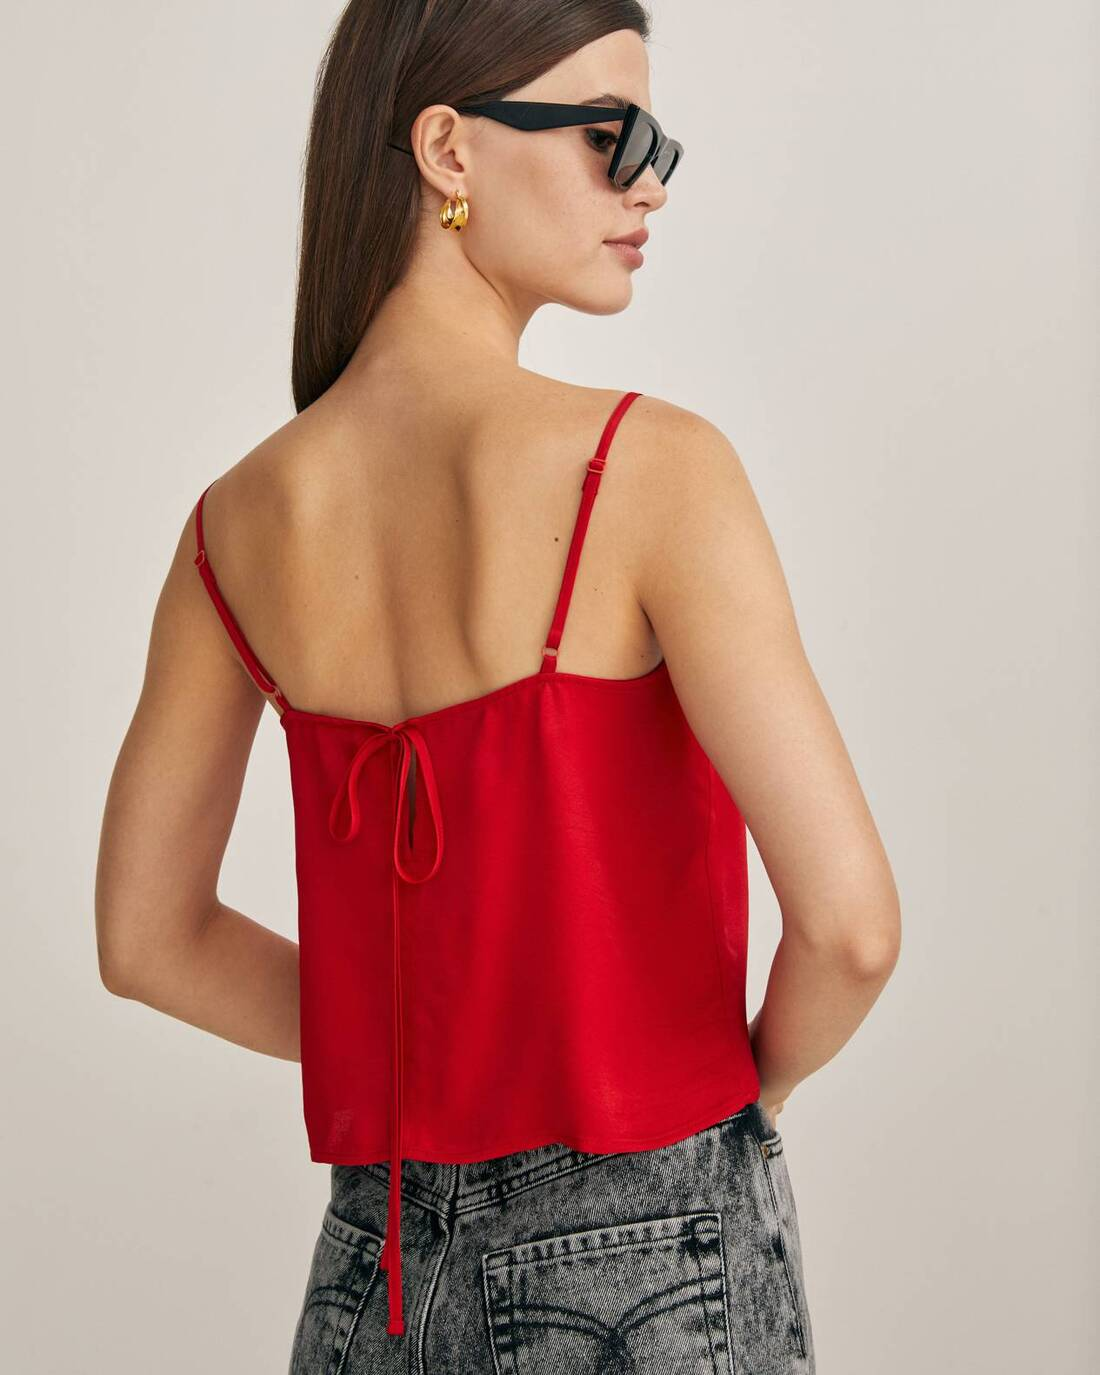 Flowy top with spaghetti straps